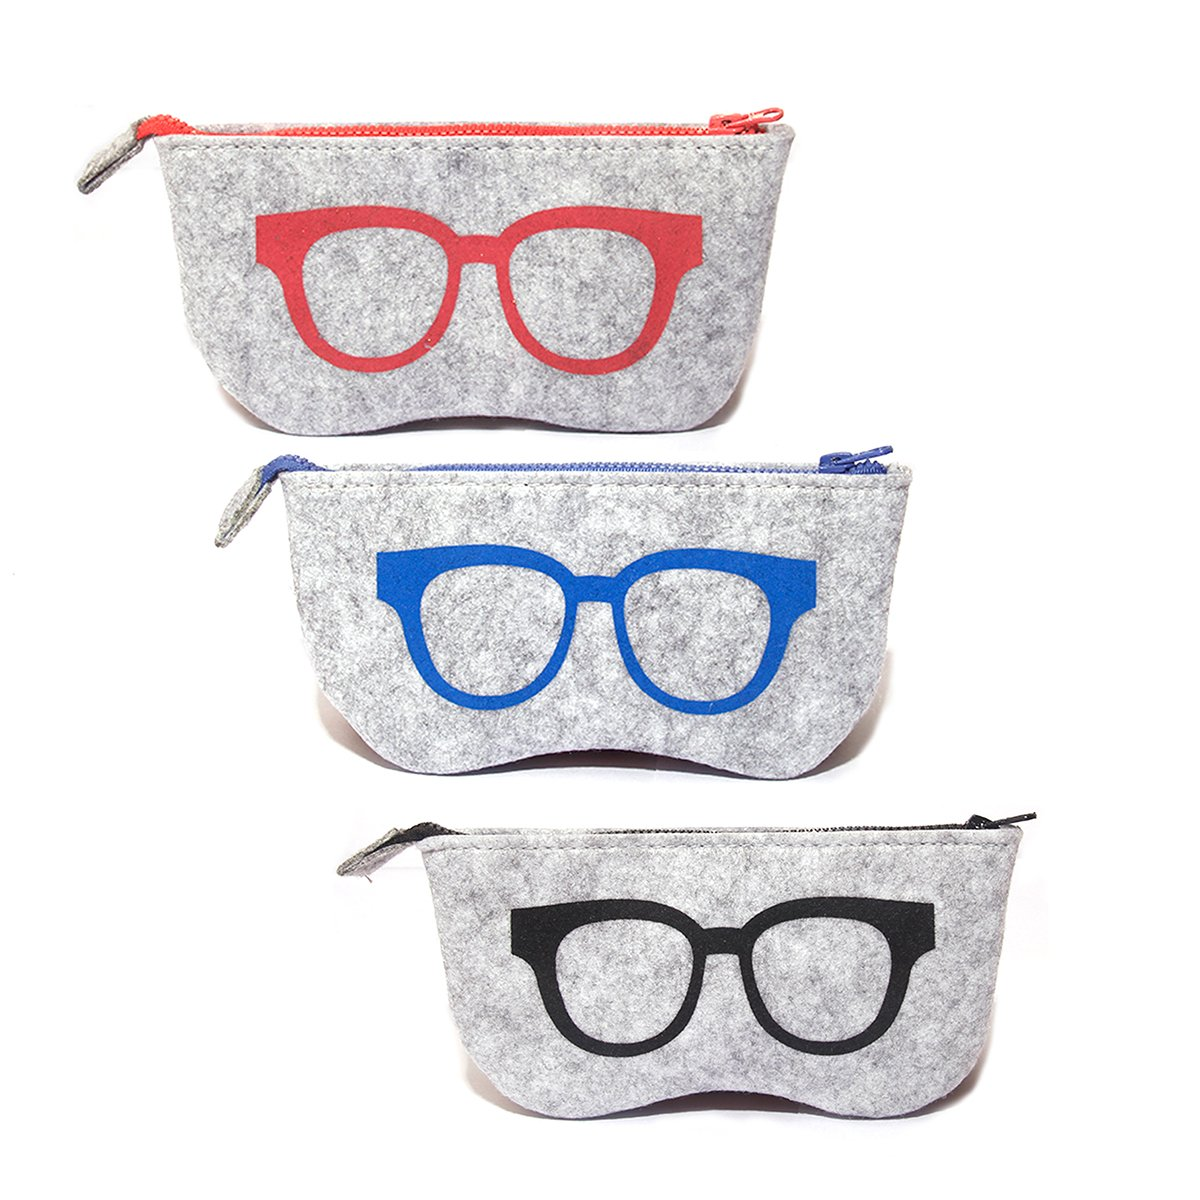 3 Pack Eyeglass Case Pouch, Polersun Portable Soft Felt Sunglasses Case Zipper Ultra Light Glasses Makeup Storage Pouch